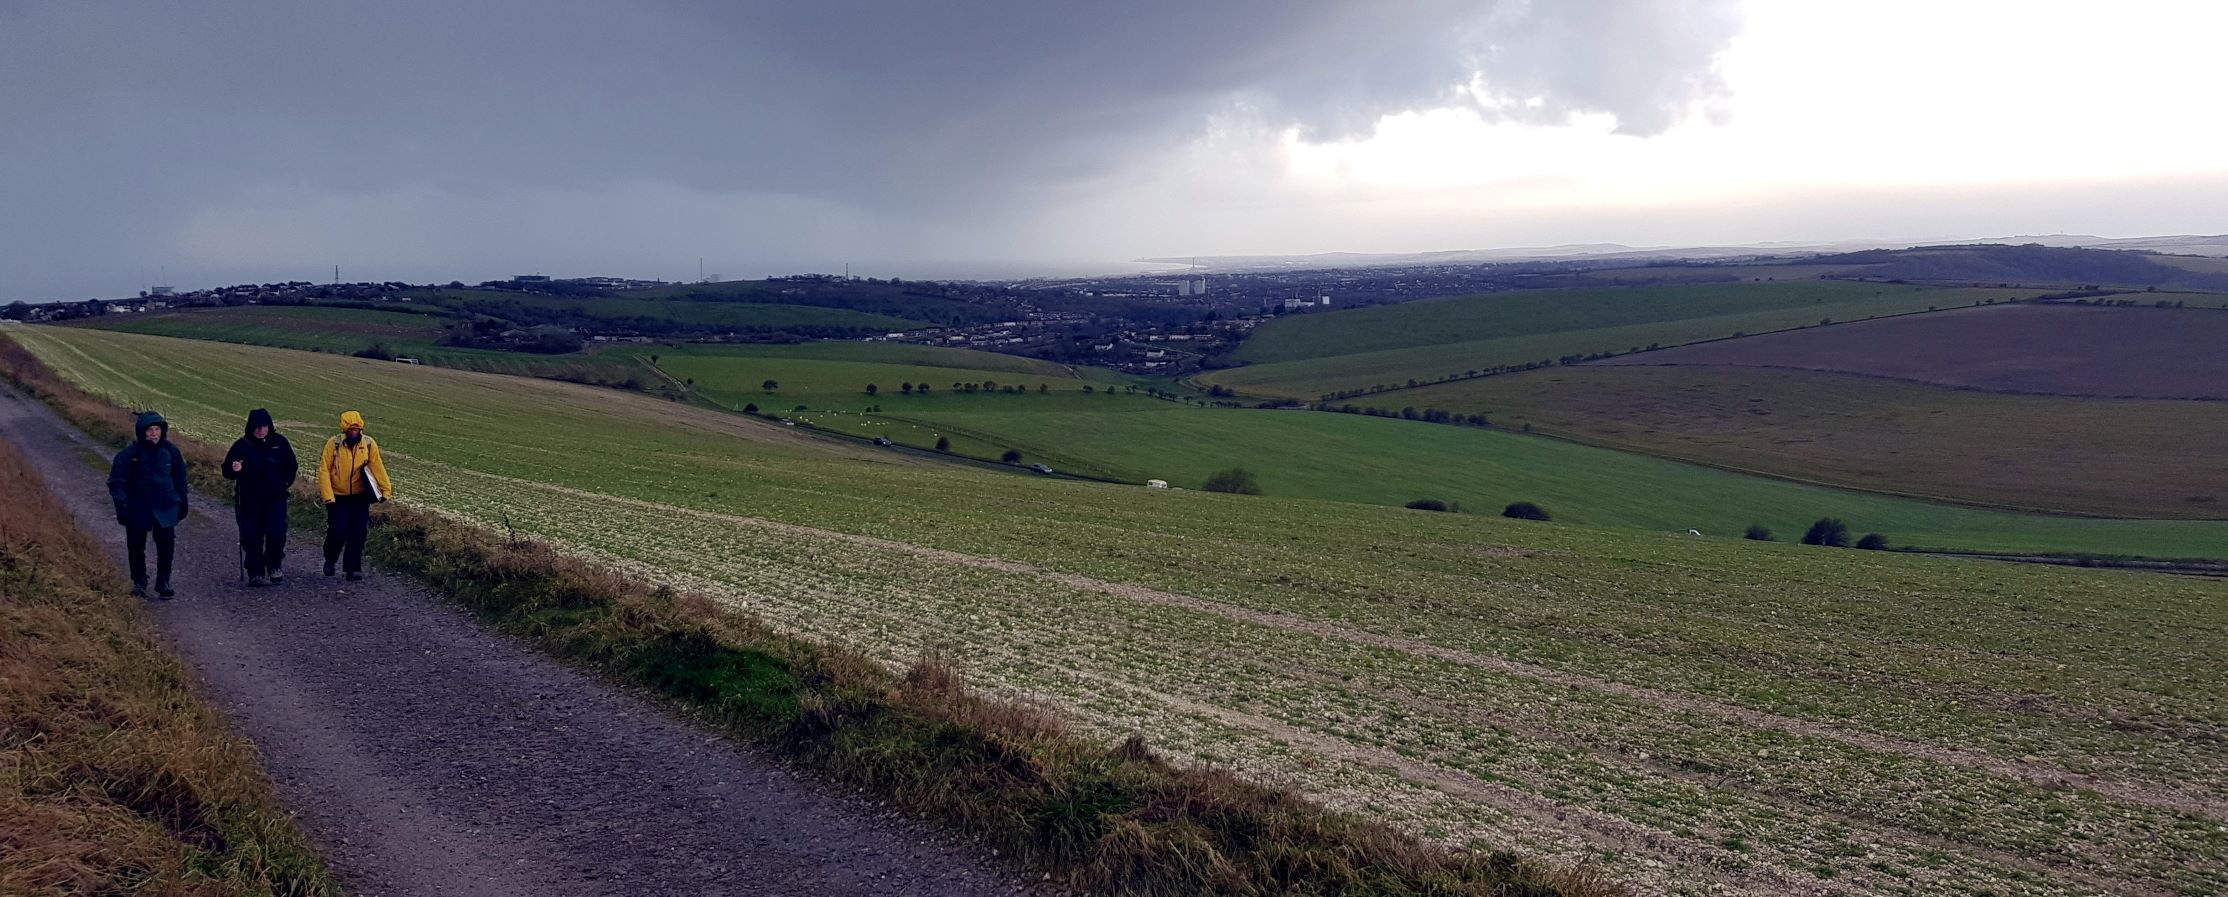 Healthwalkers climbing Newmarket Hill in rain, with Brighton in distance